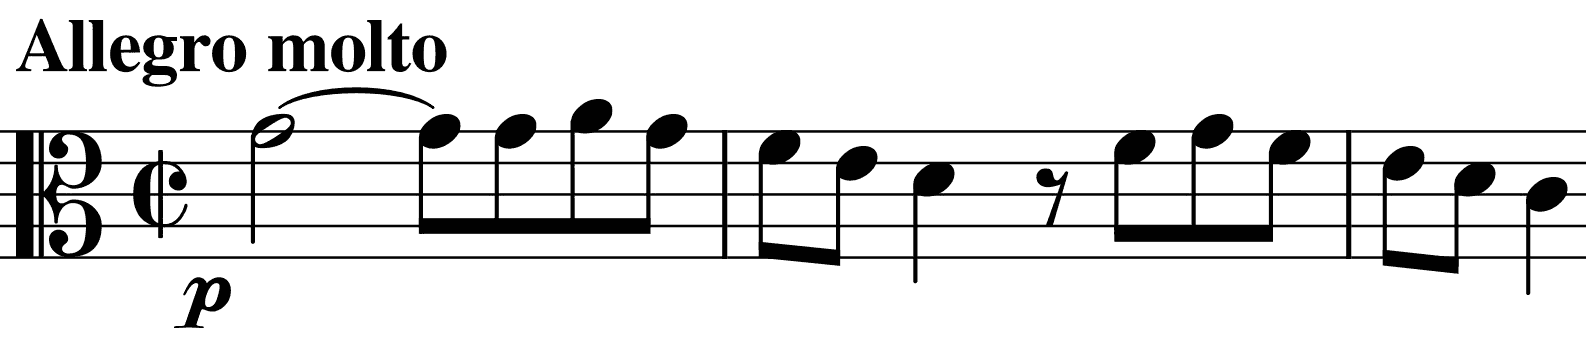 last movement's fugue